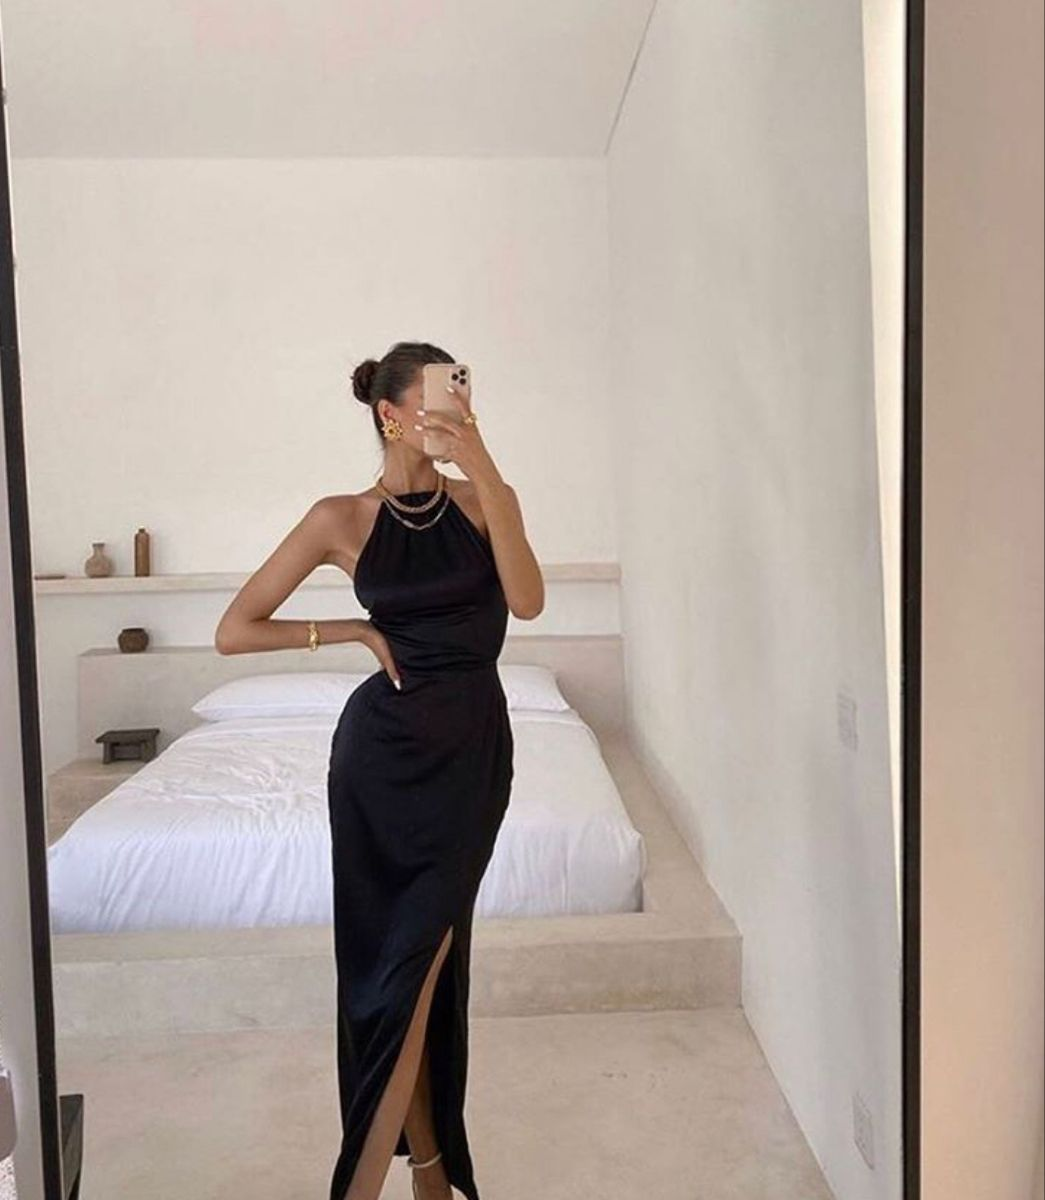 𝓈𝓍𝓋𝓍𝑔𝑒𝑔𝒶𝓁 ☾ | klassische outfits, modestil, outfit